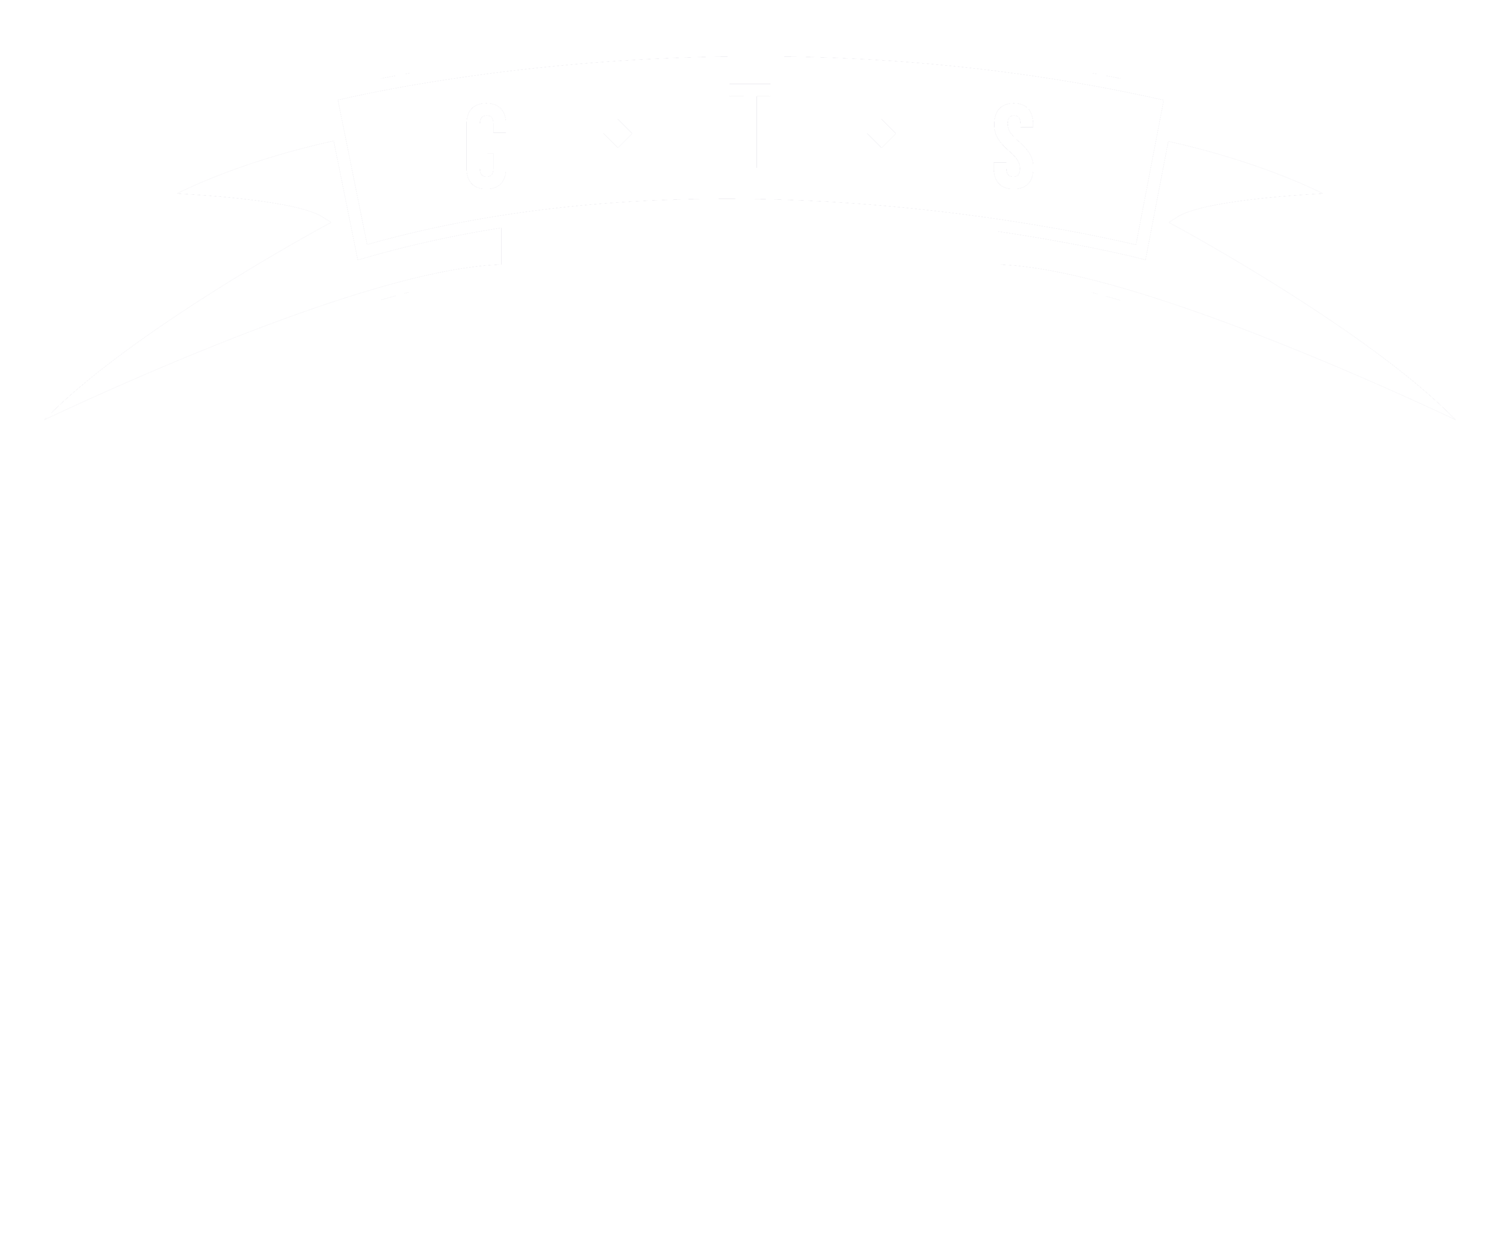 Global Talent Scouting